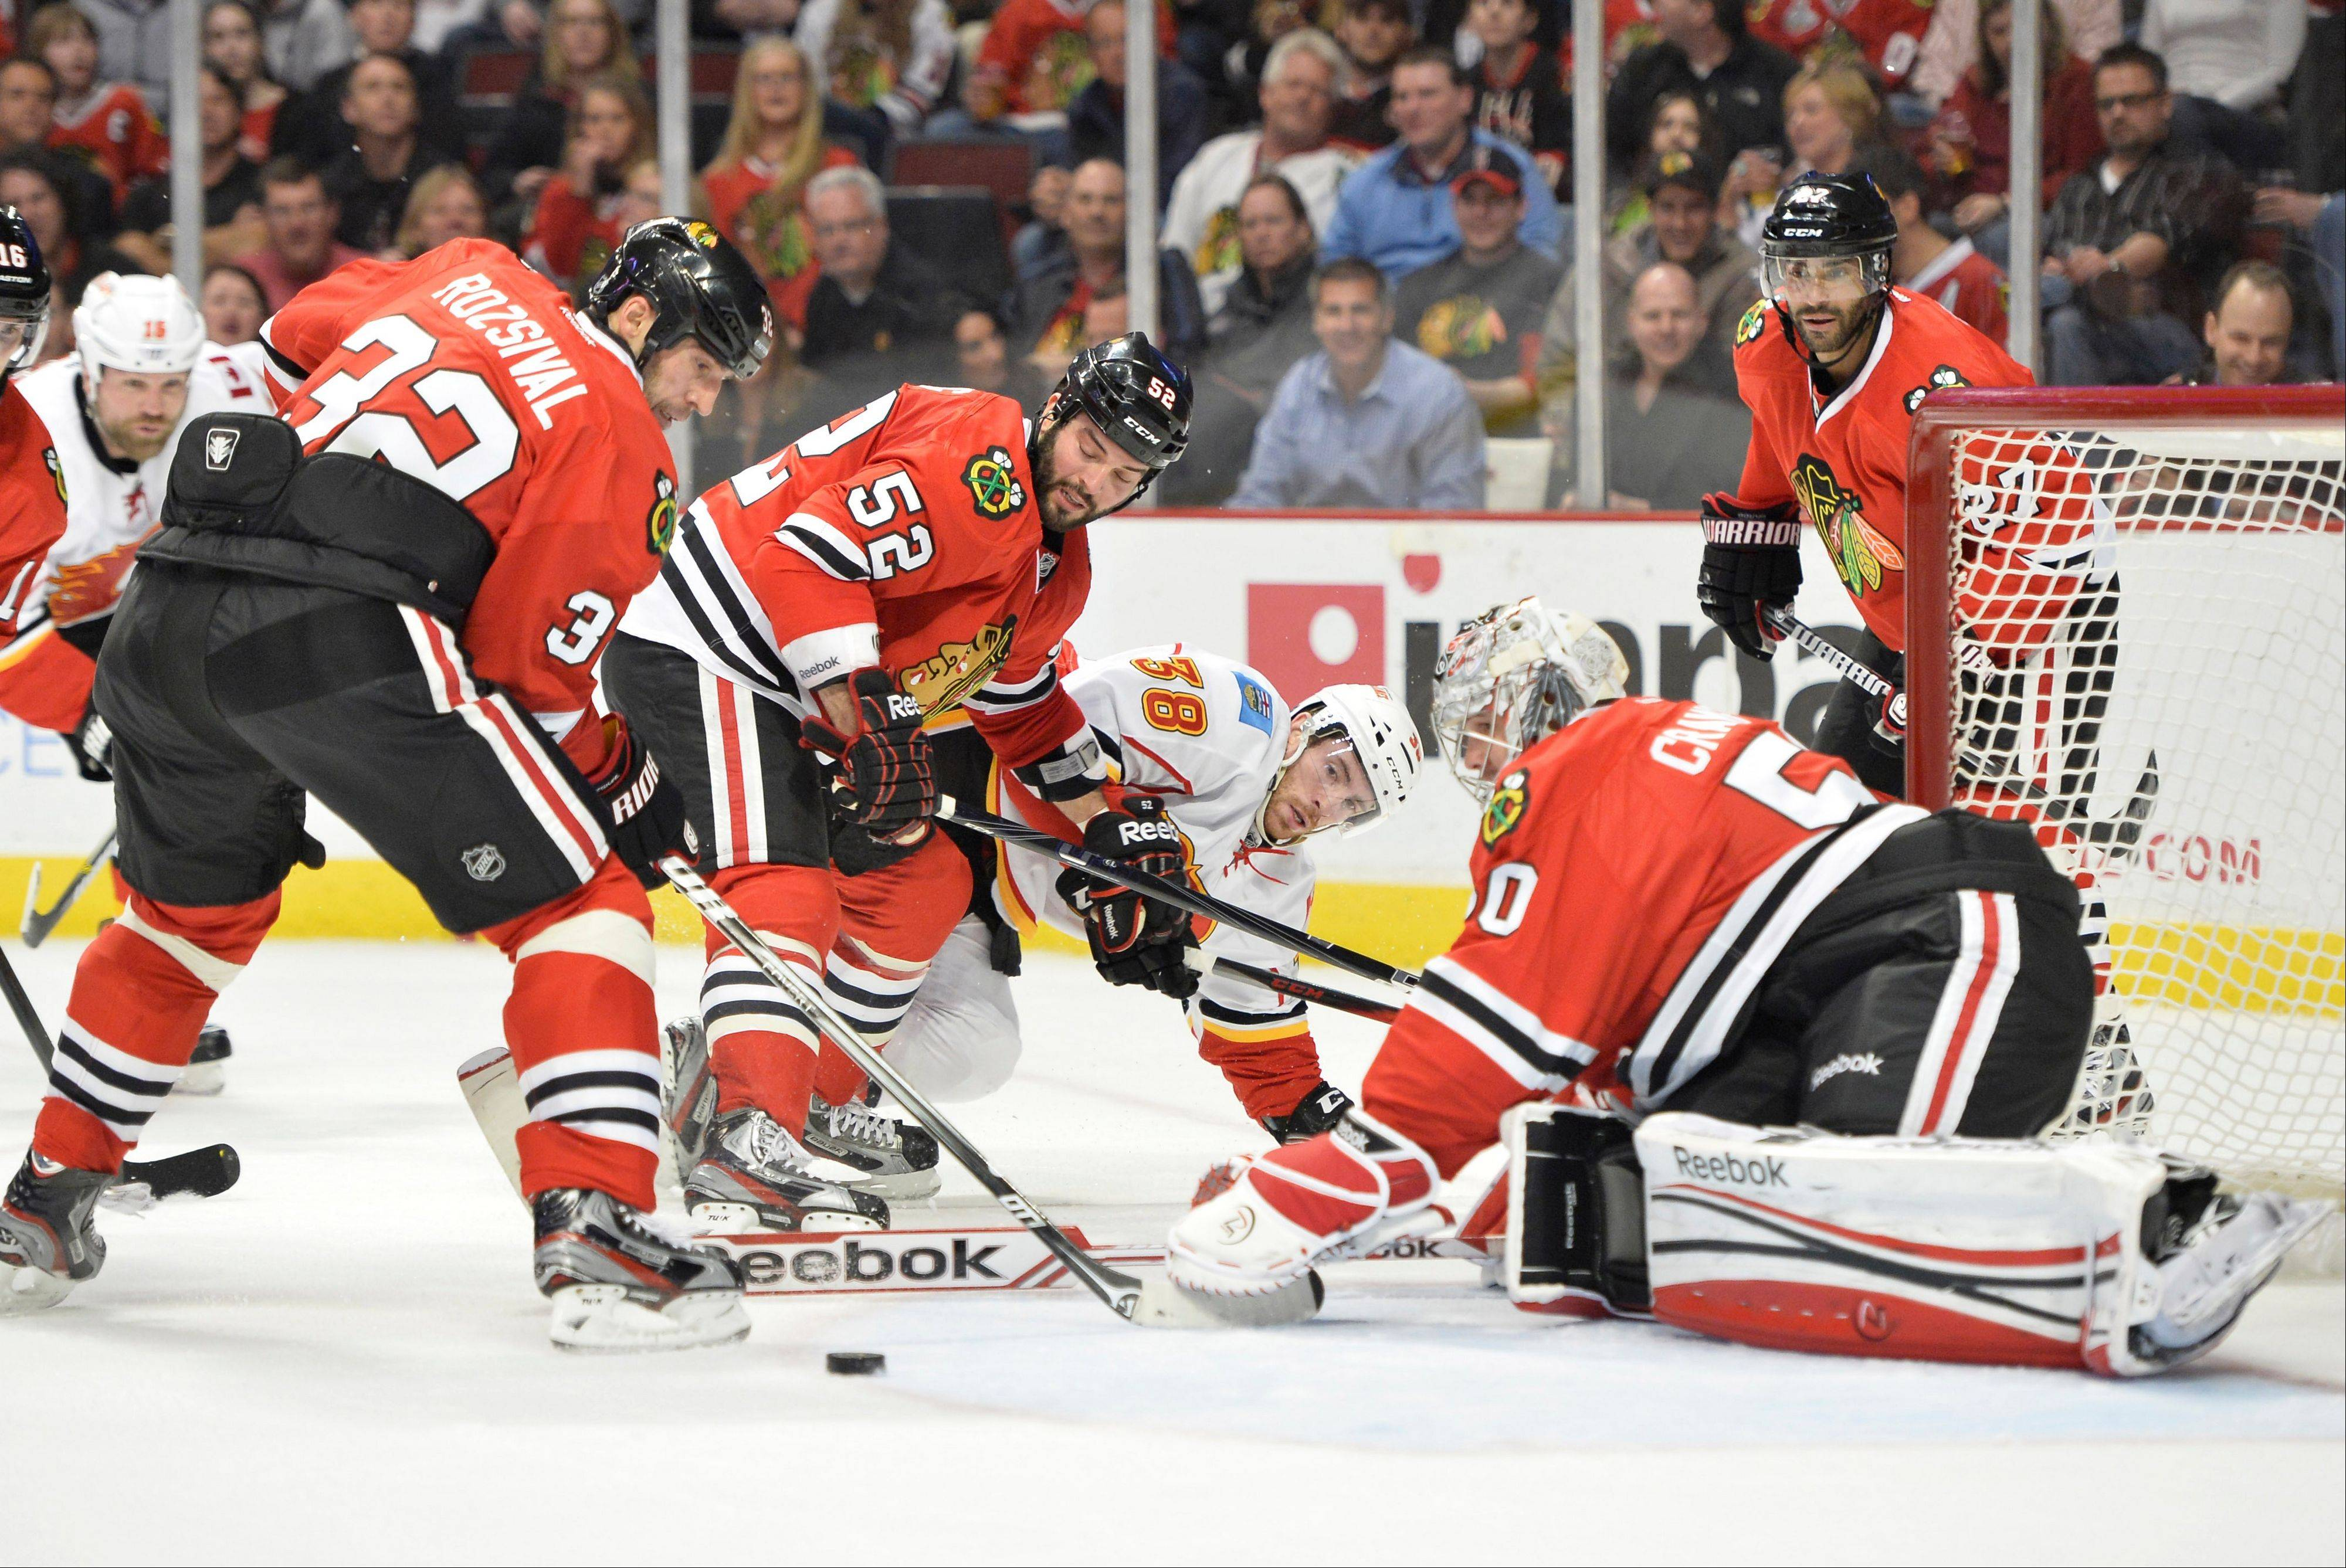 Michal Rozsival, left, of the Czech Republic, Brandon Bollig (52) and goalie Corey Crawford defend the net as Calgary's Ben Street, center, tries to score during the first period Friday.